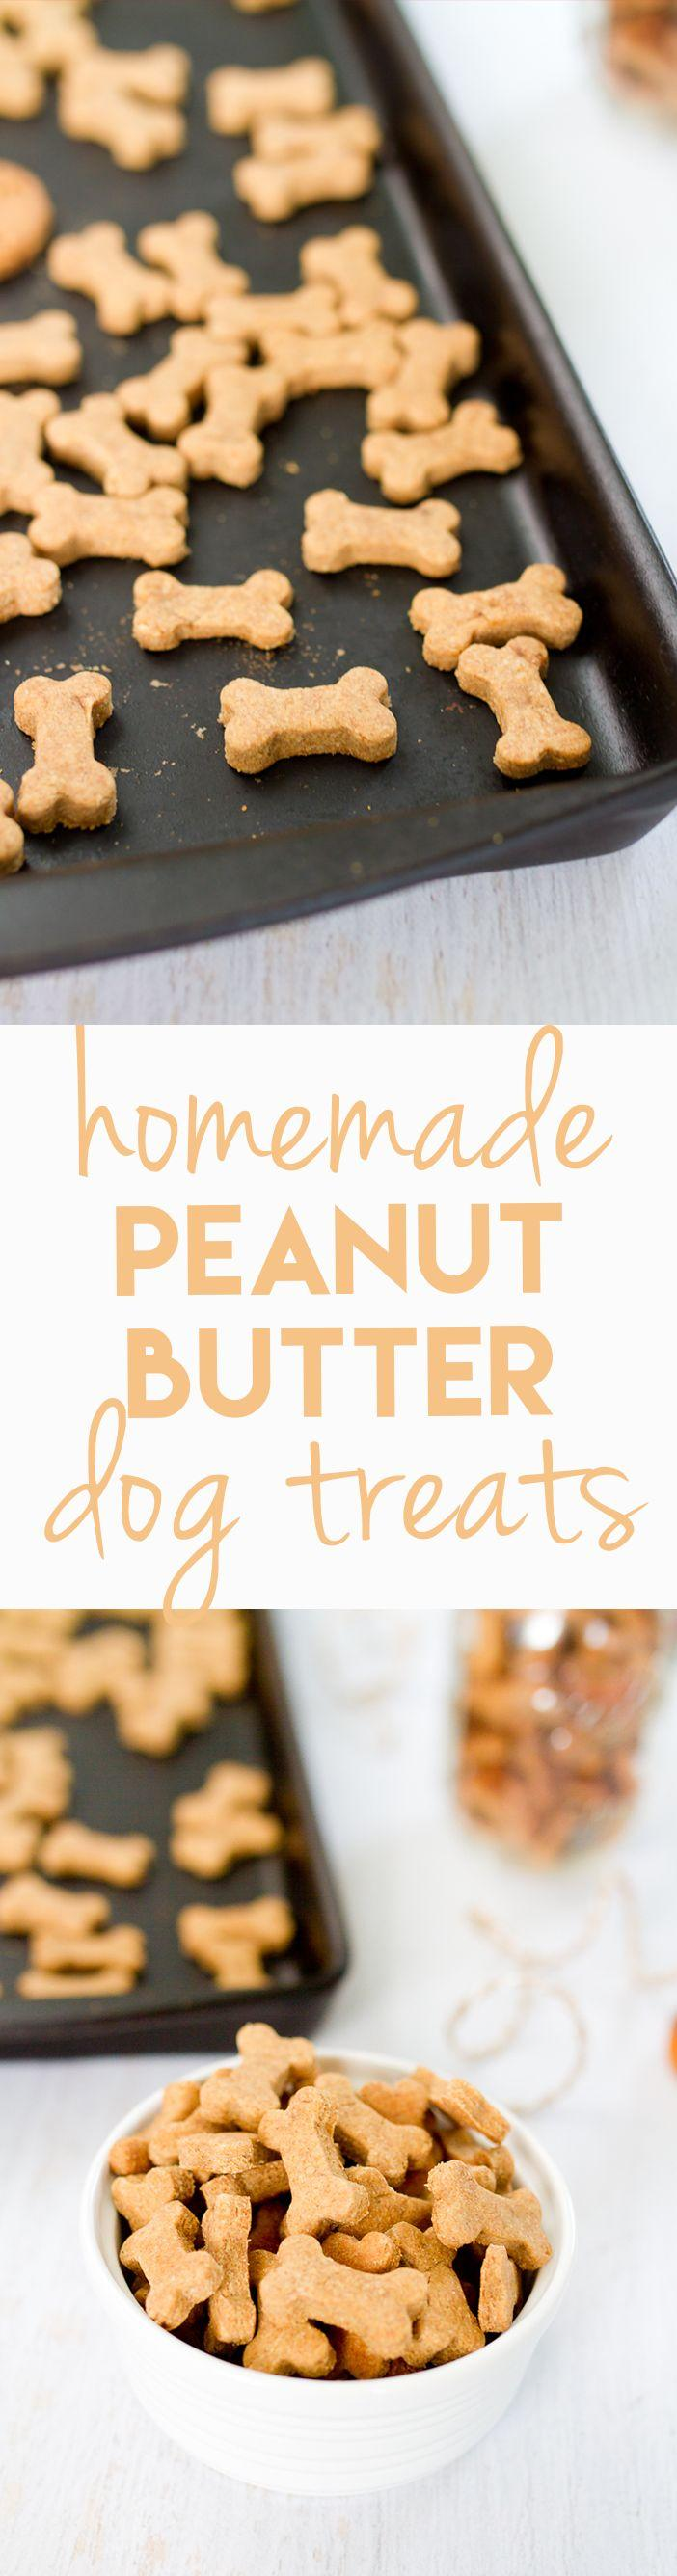 Boda - Homemade Peanut Butter Dog Treats